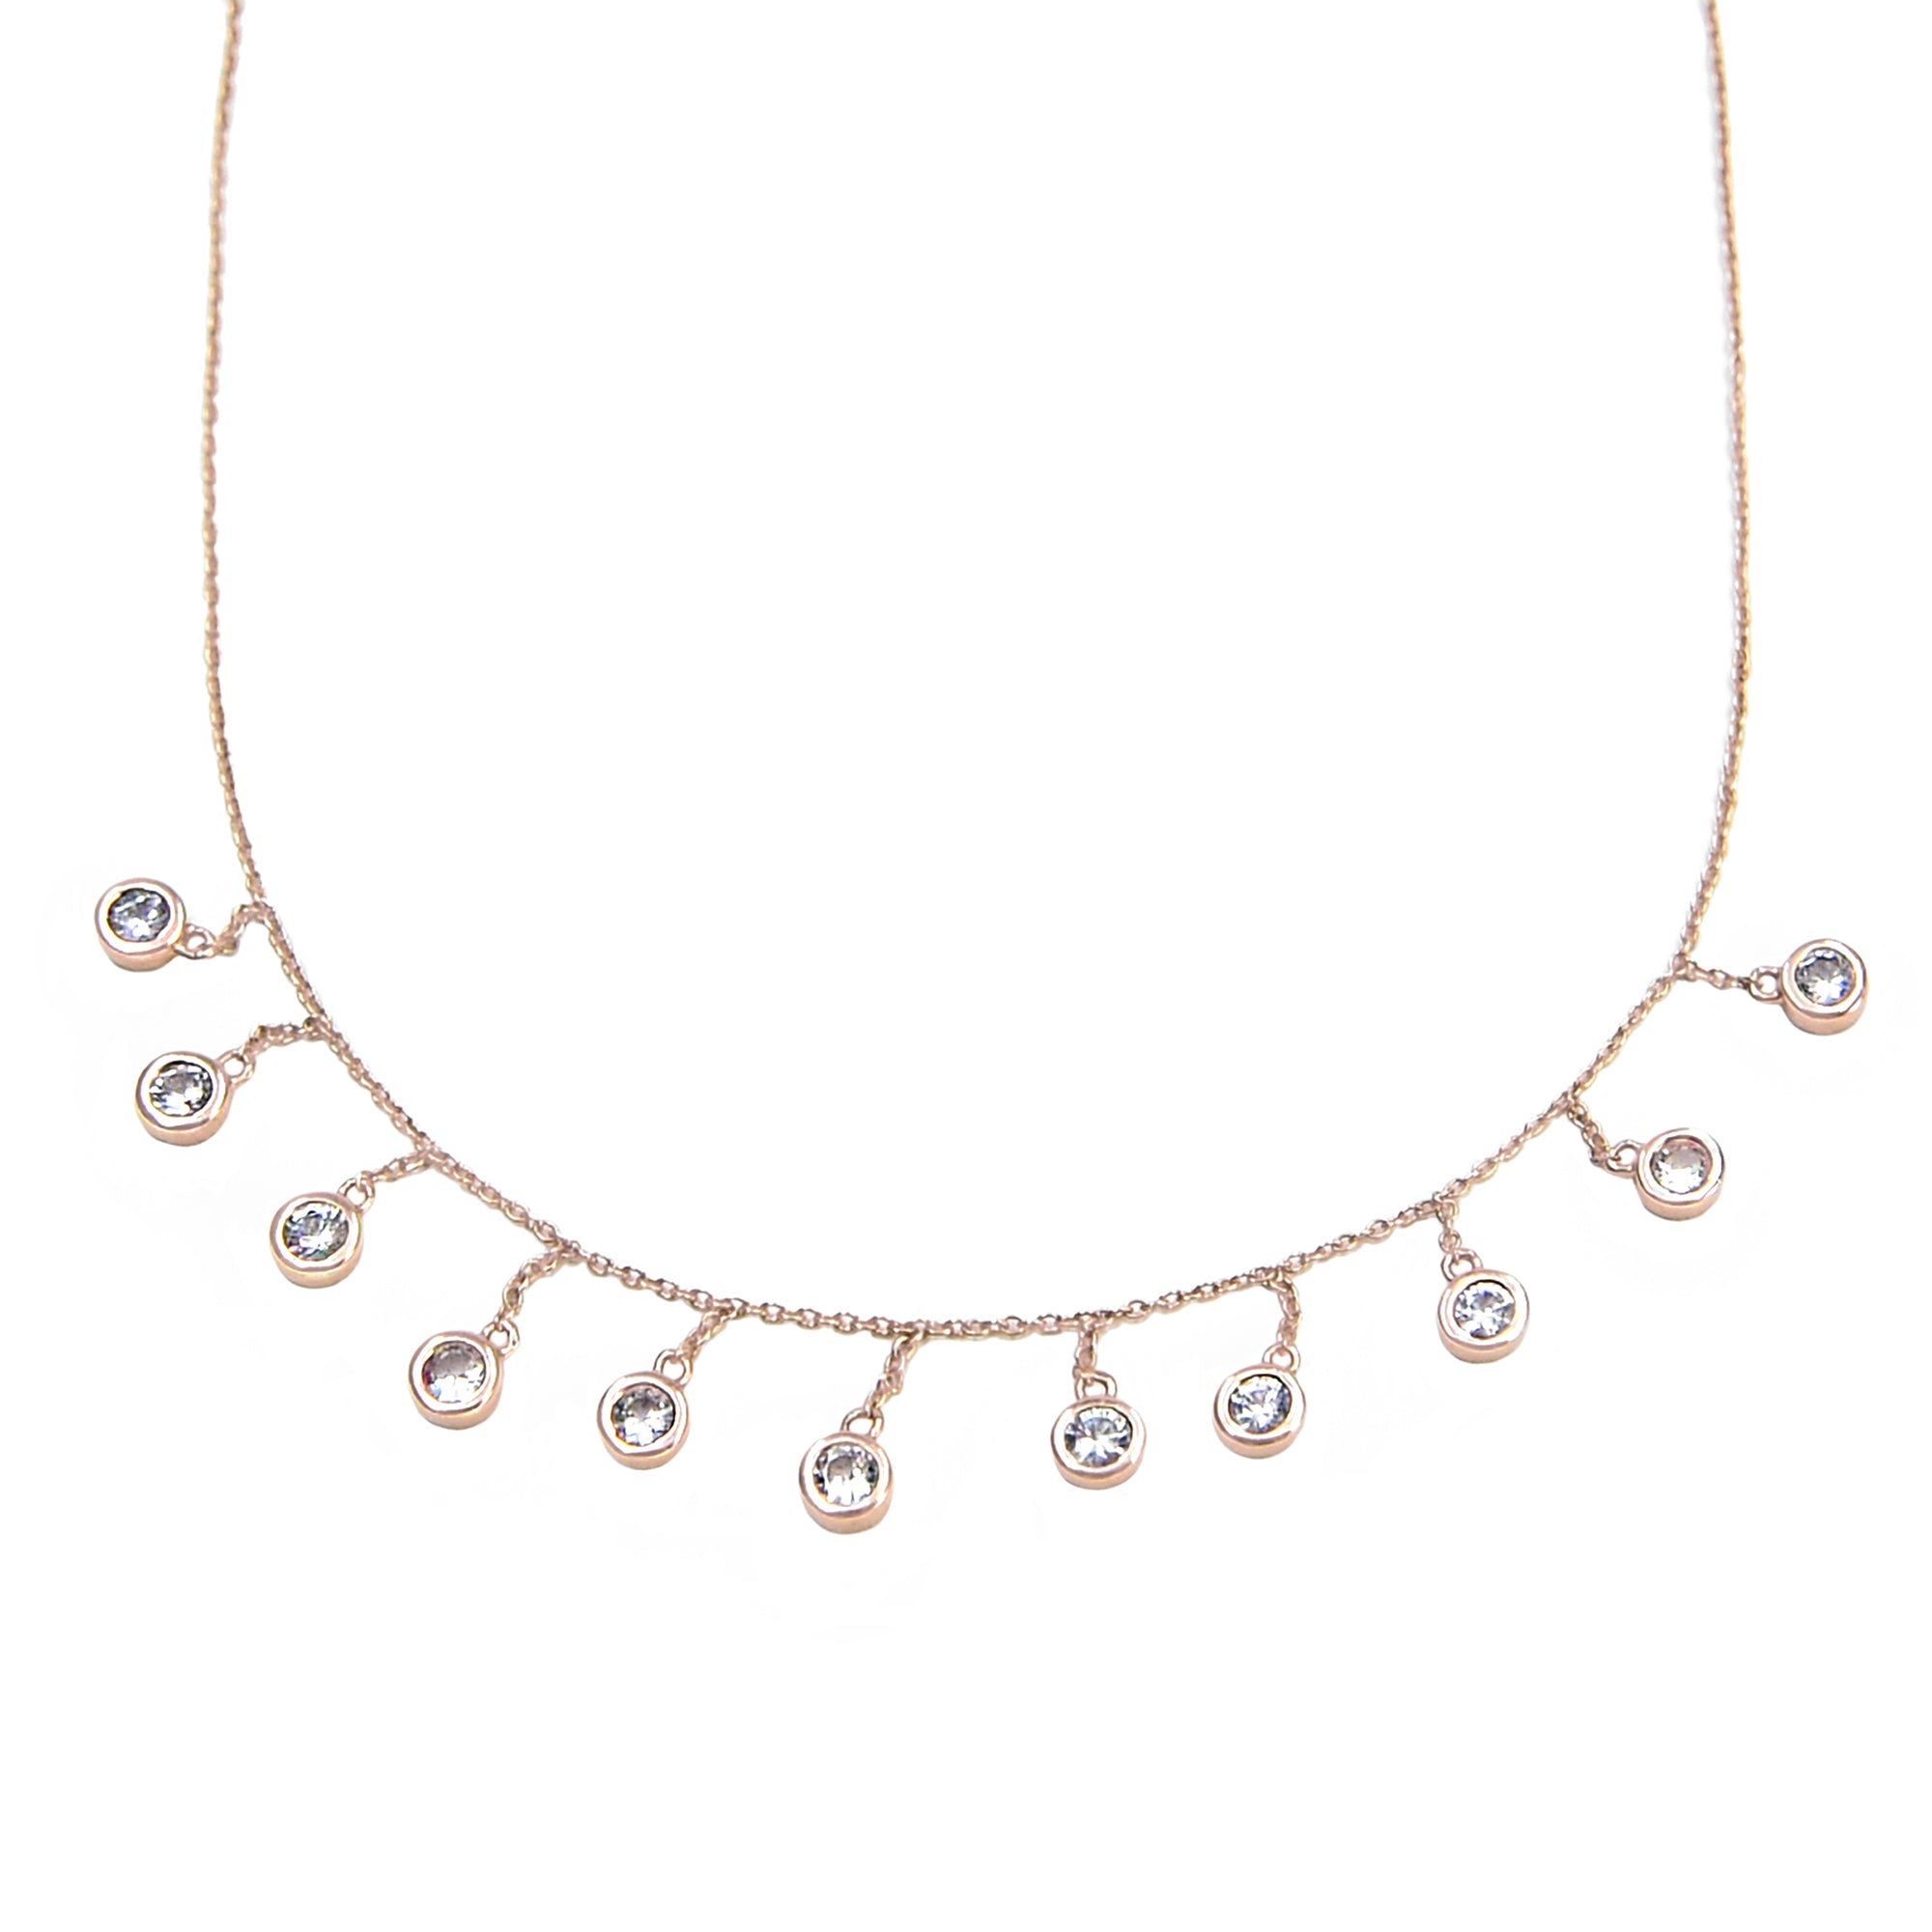 Bondeye White Sapphire Droplet Necklace - Rose Gold - Necklaces - Broken English Jewelry